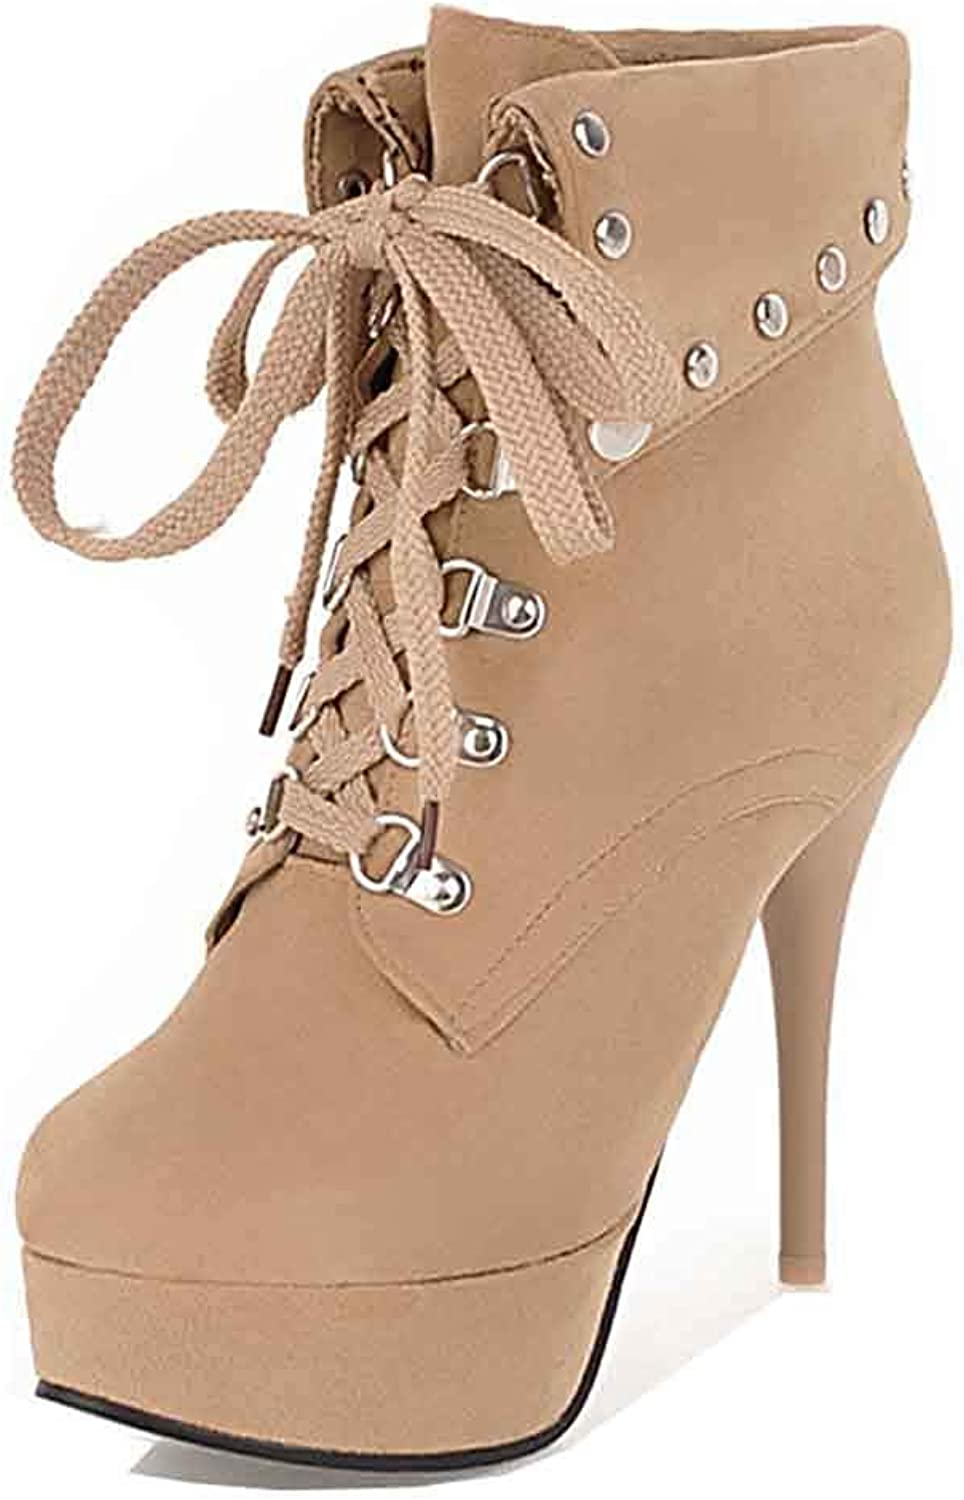 Unm Women's Studded Fold Over Cuffed Platform Booties Lace Up Round Toe Stiletto High Heel Ankle Boots